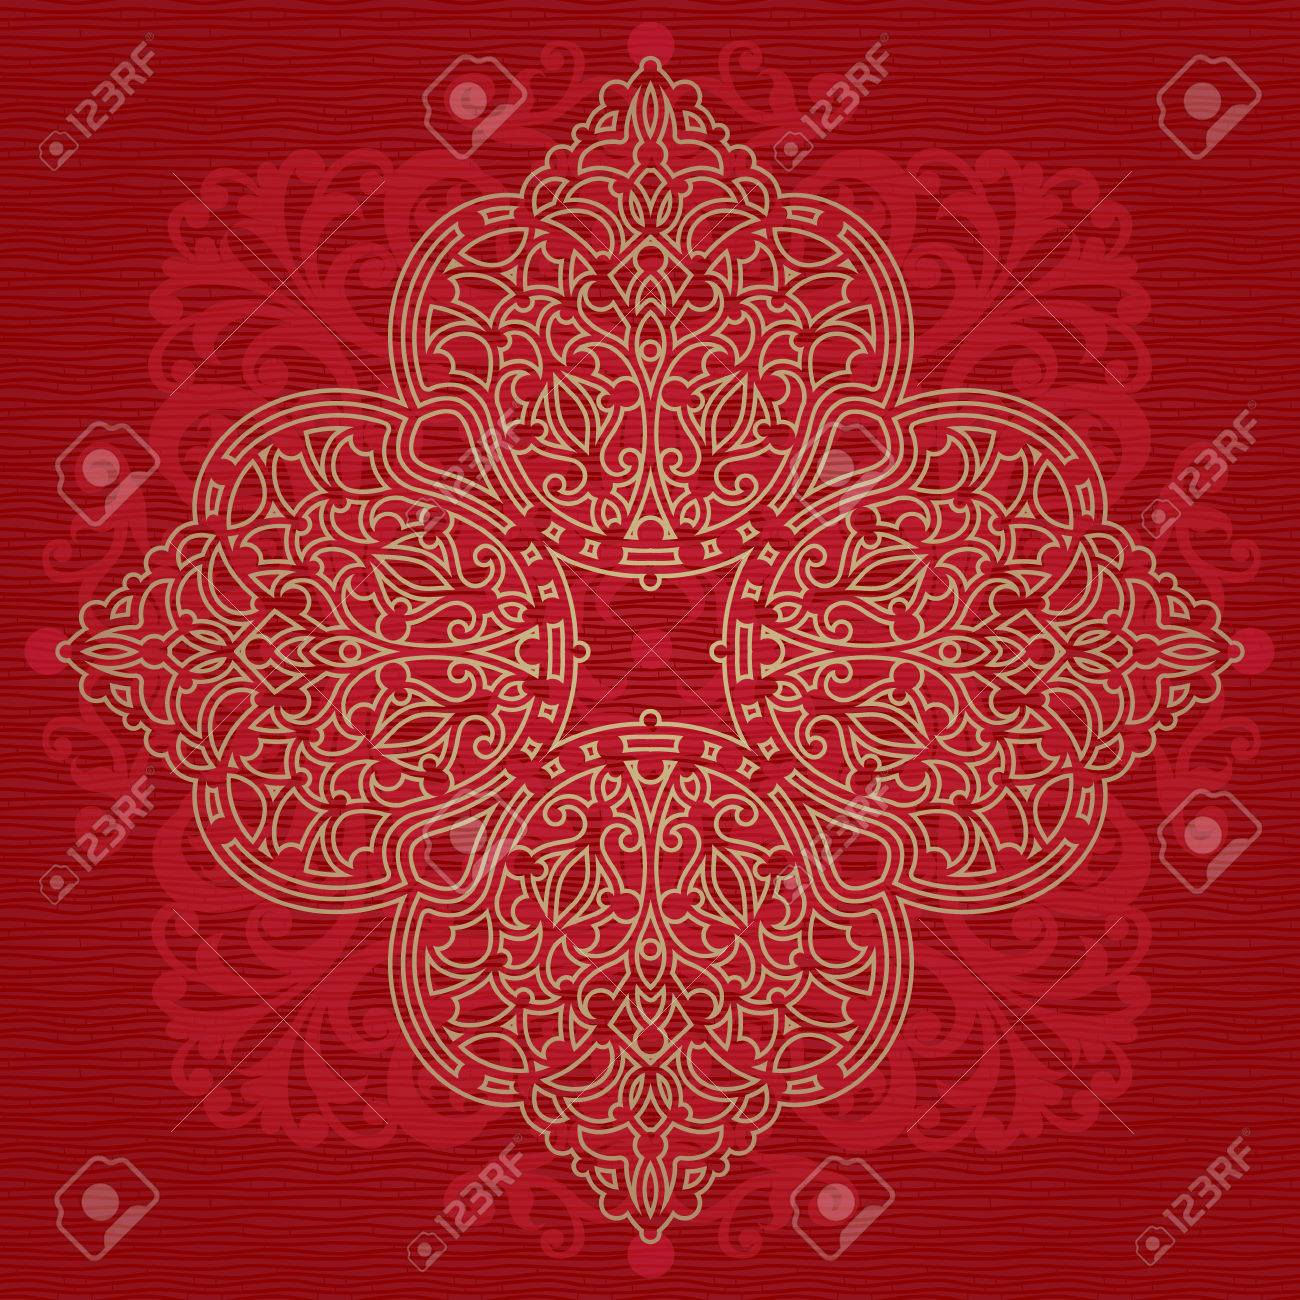 Vintage background ornate baroque pattern vector illustration stock - Vintage Ornate Pattern On Red Background Floral Baroque Ornament In Victorian Style Traditional Ornament